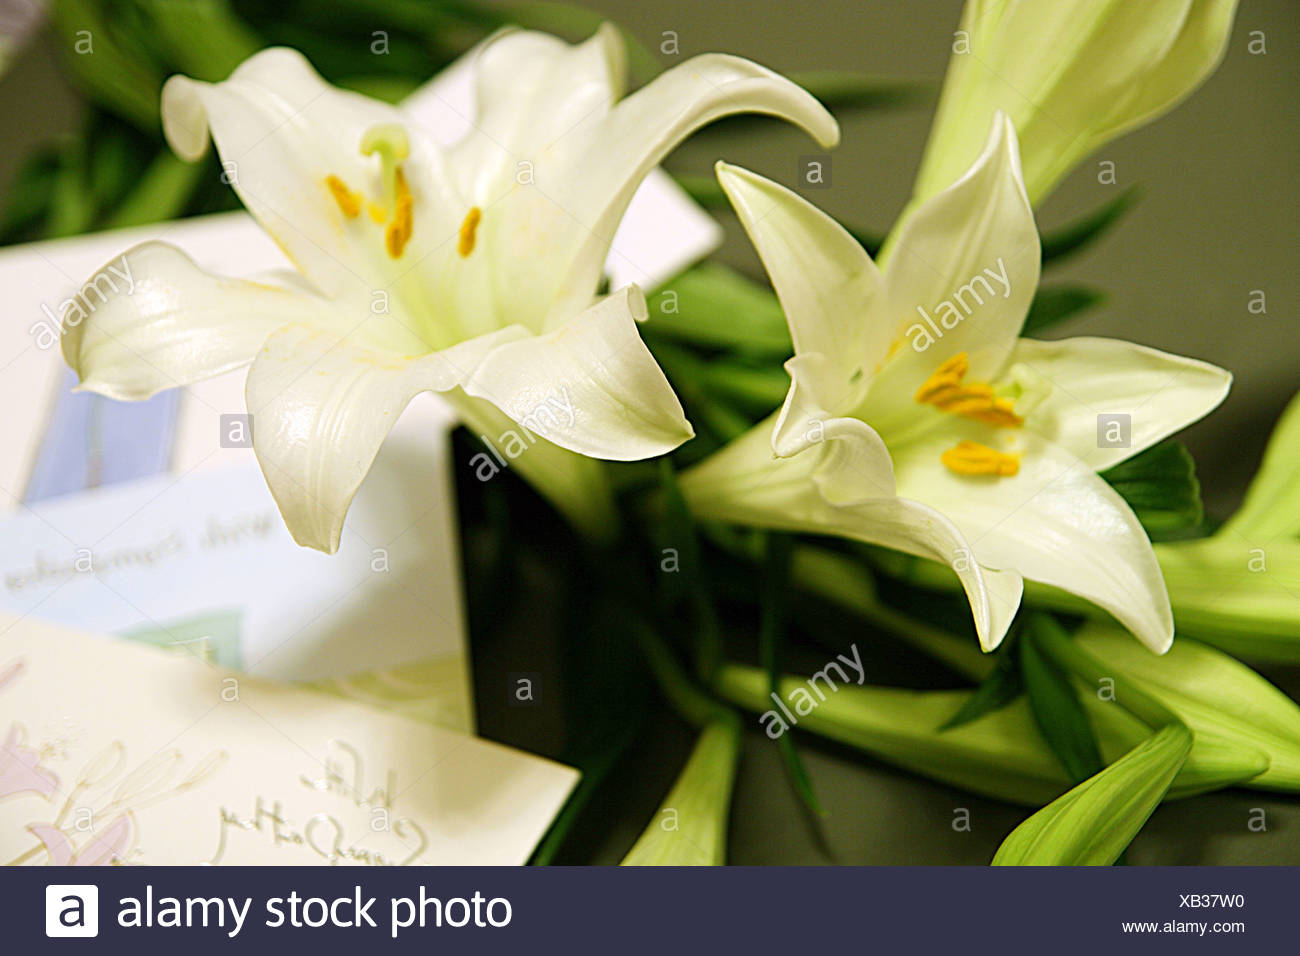 Sympathy cards stock photos sympathy cards stock images alamy white lilies and with sympathy greetings cards stock image kristyandbryce Choice Image